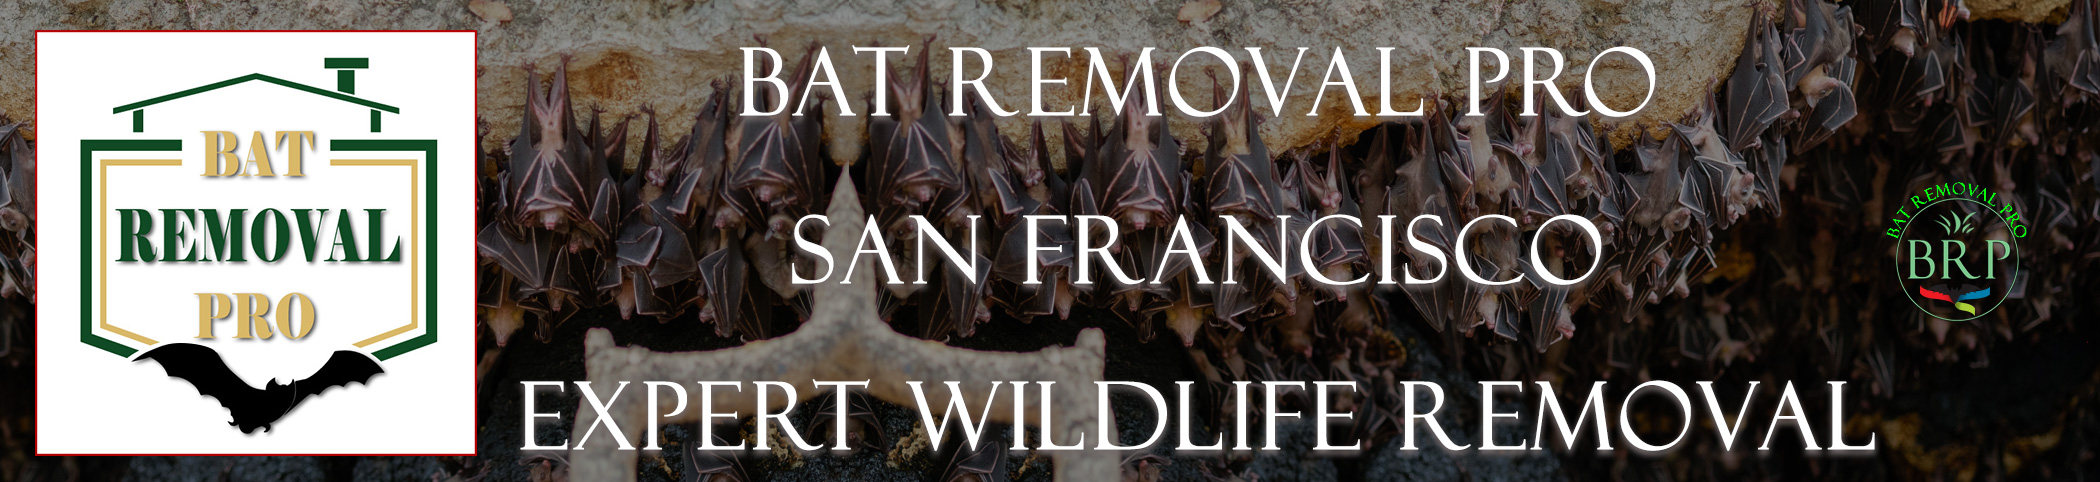 san francisco california bat removal at bat removal pro